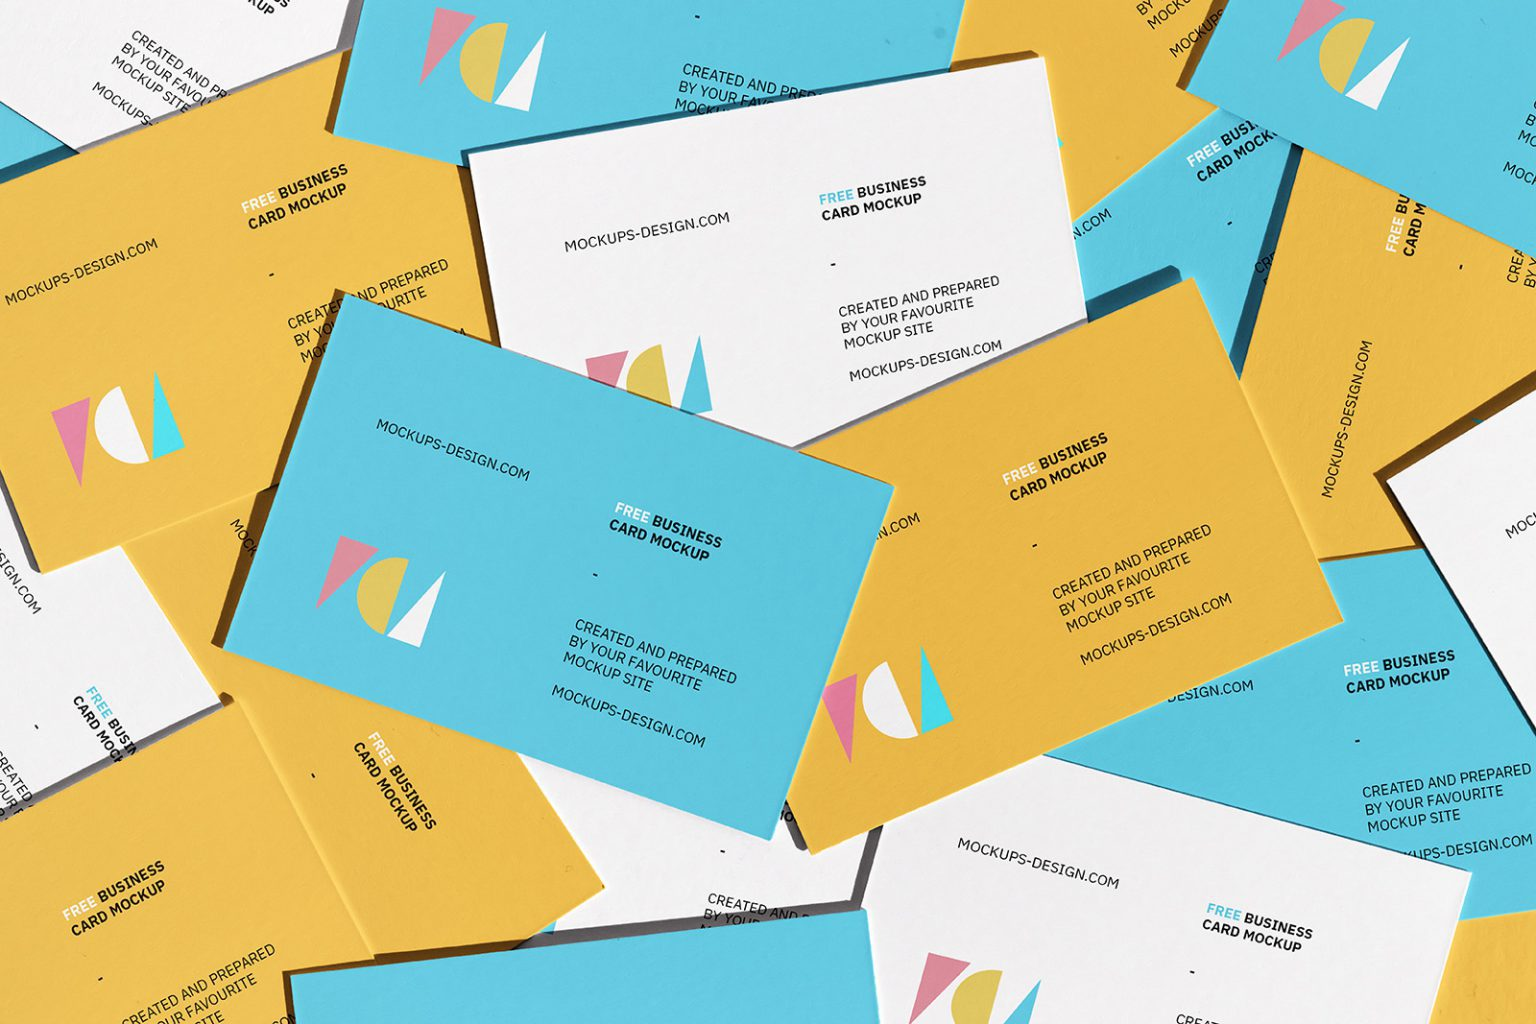 Free Download Stacked Business Card Design Mockup PSD, Great quality and easy to use this mockup for your awesome design project. High resolution Photoshop. 100% free!